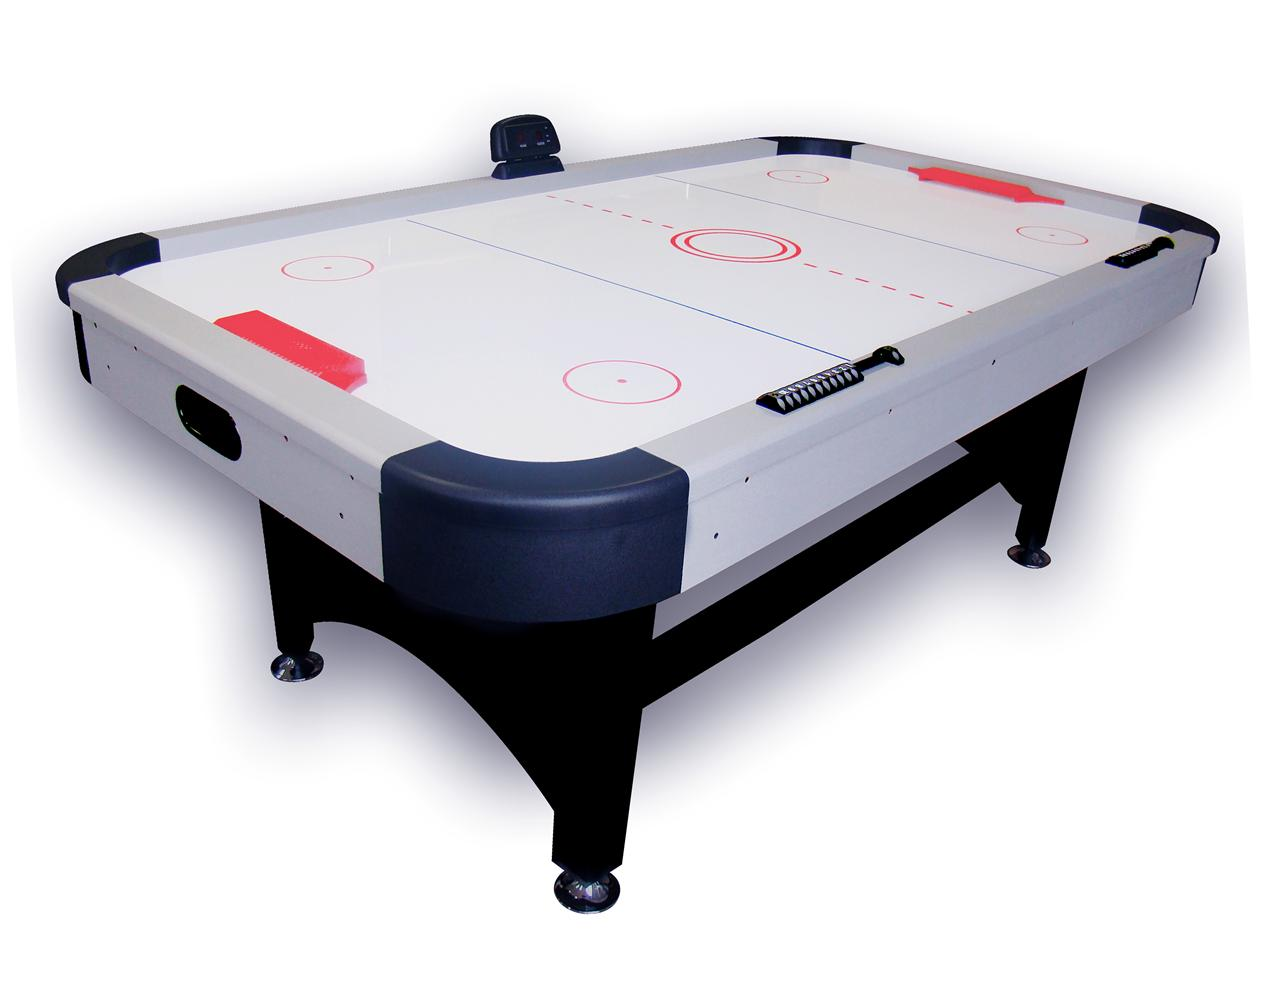 7ft deluxe air hockey table electronic scorer powerful for Air hockey blower fan motor